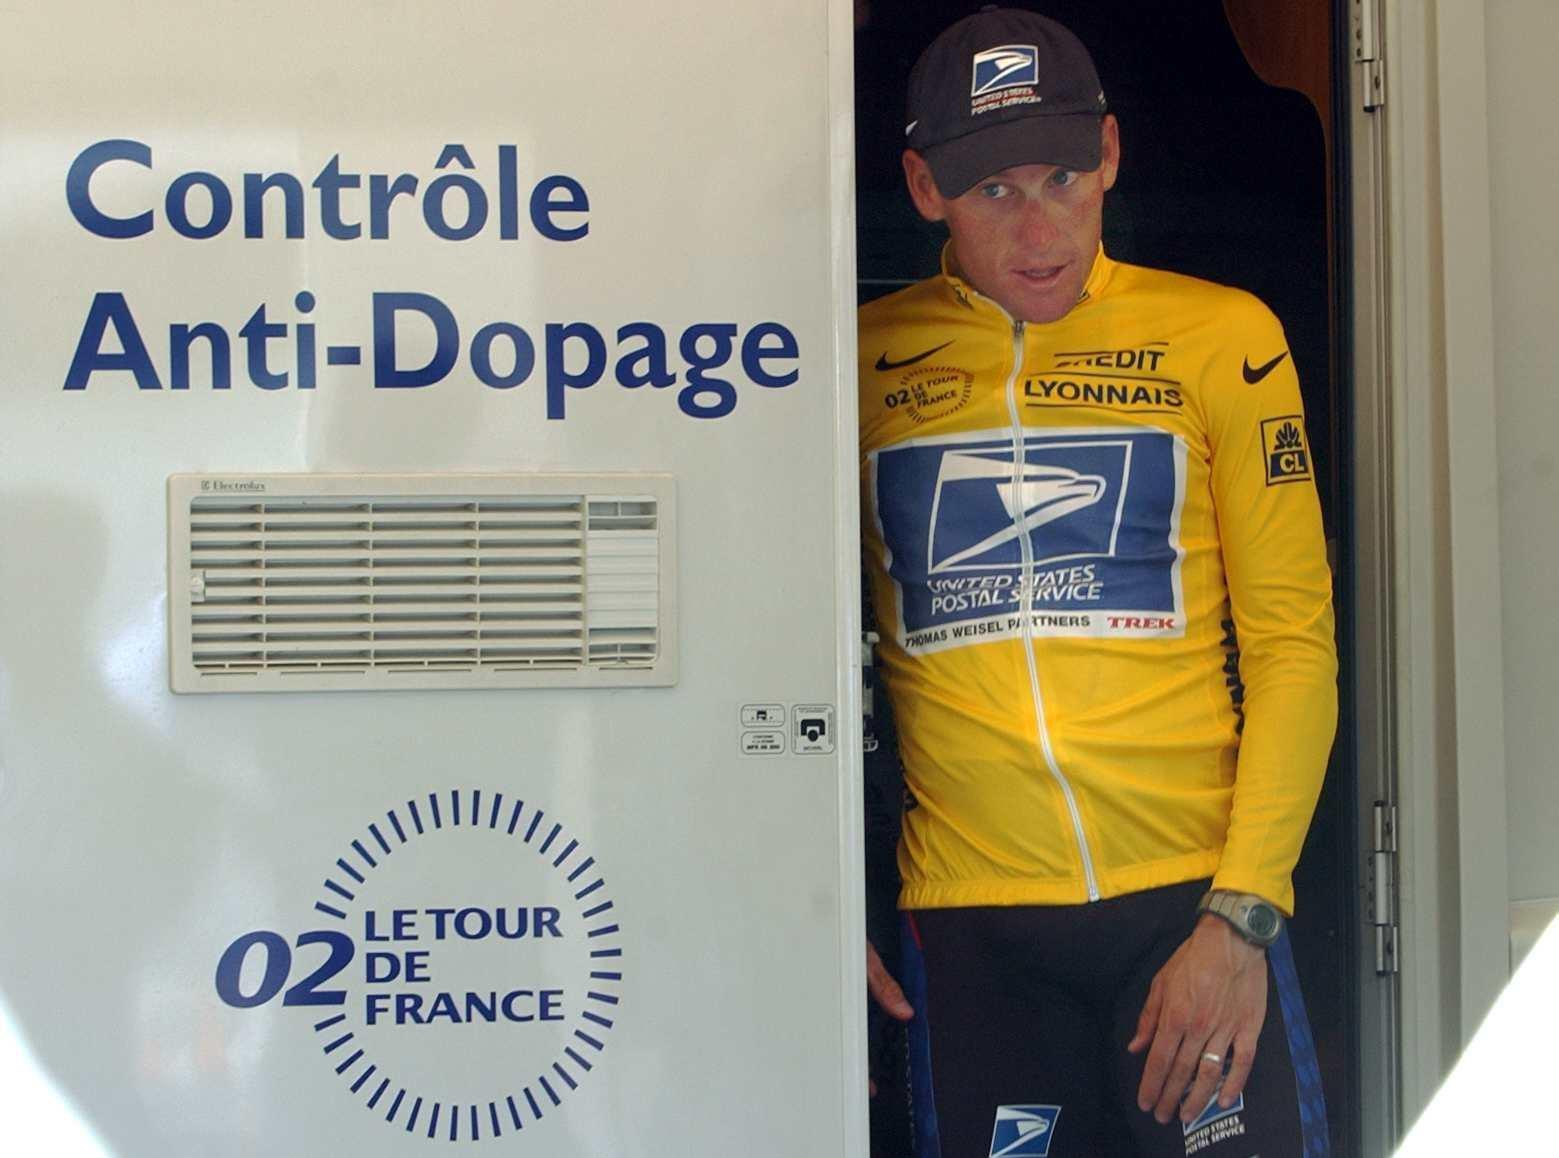 Armstrong admitted doping throughout the period he won his seven Tour de France titles